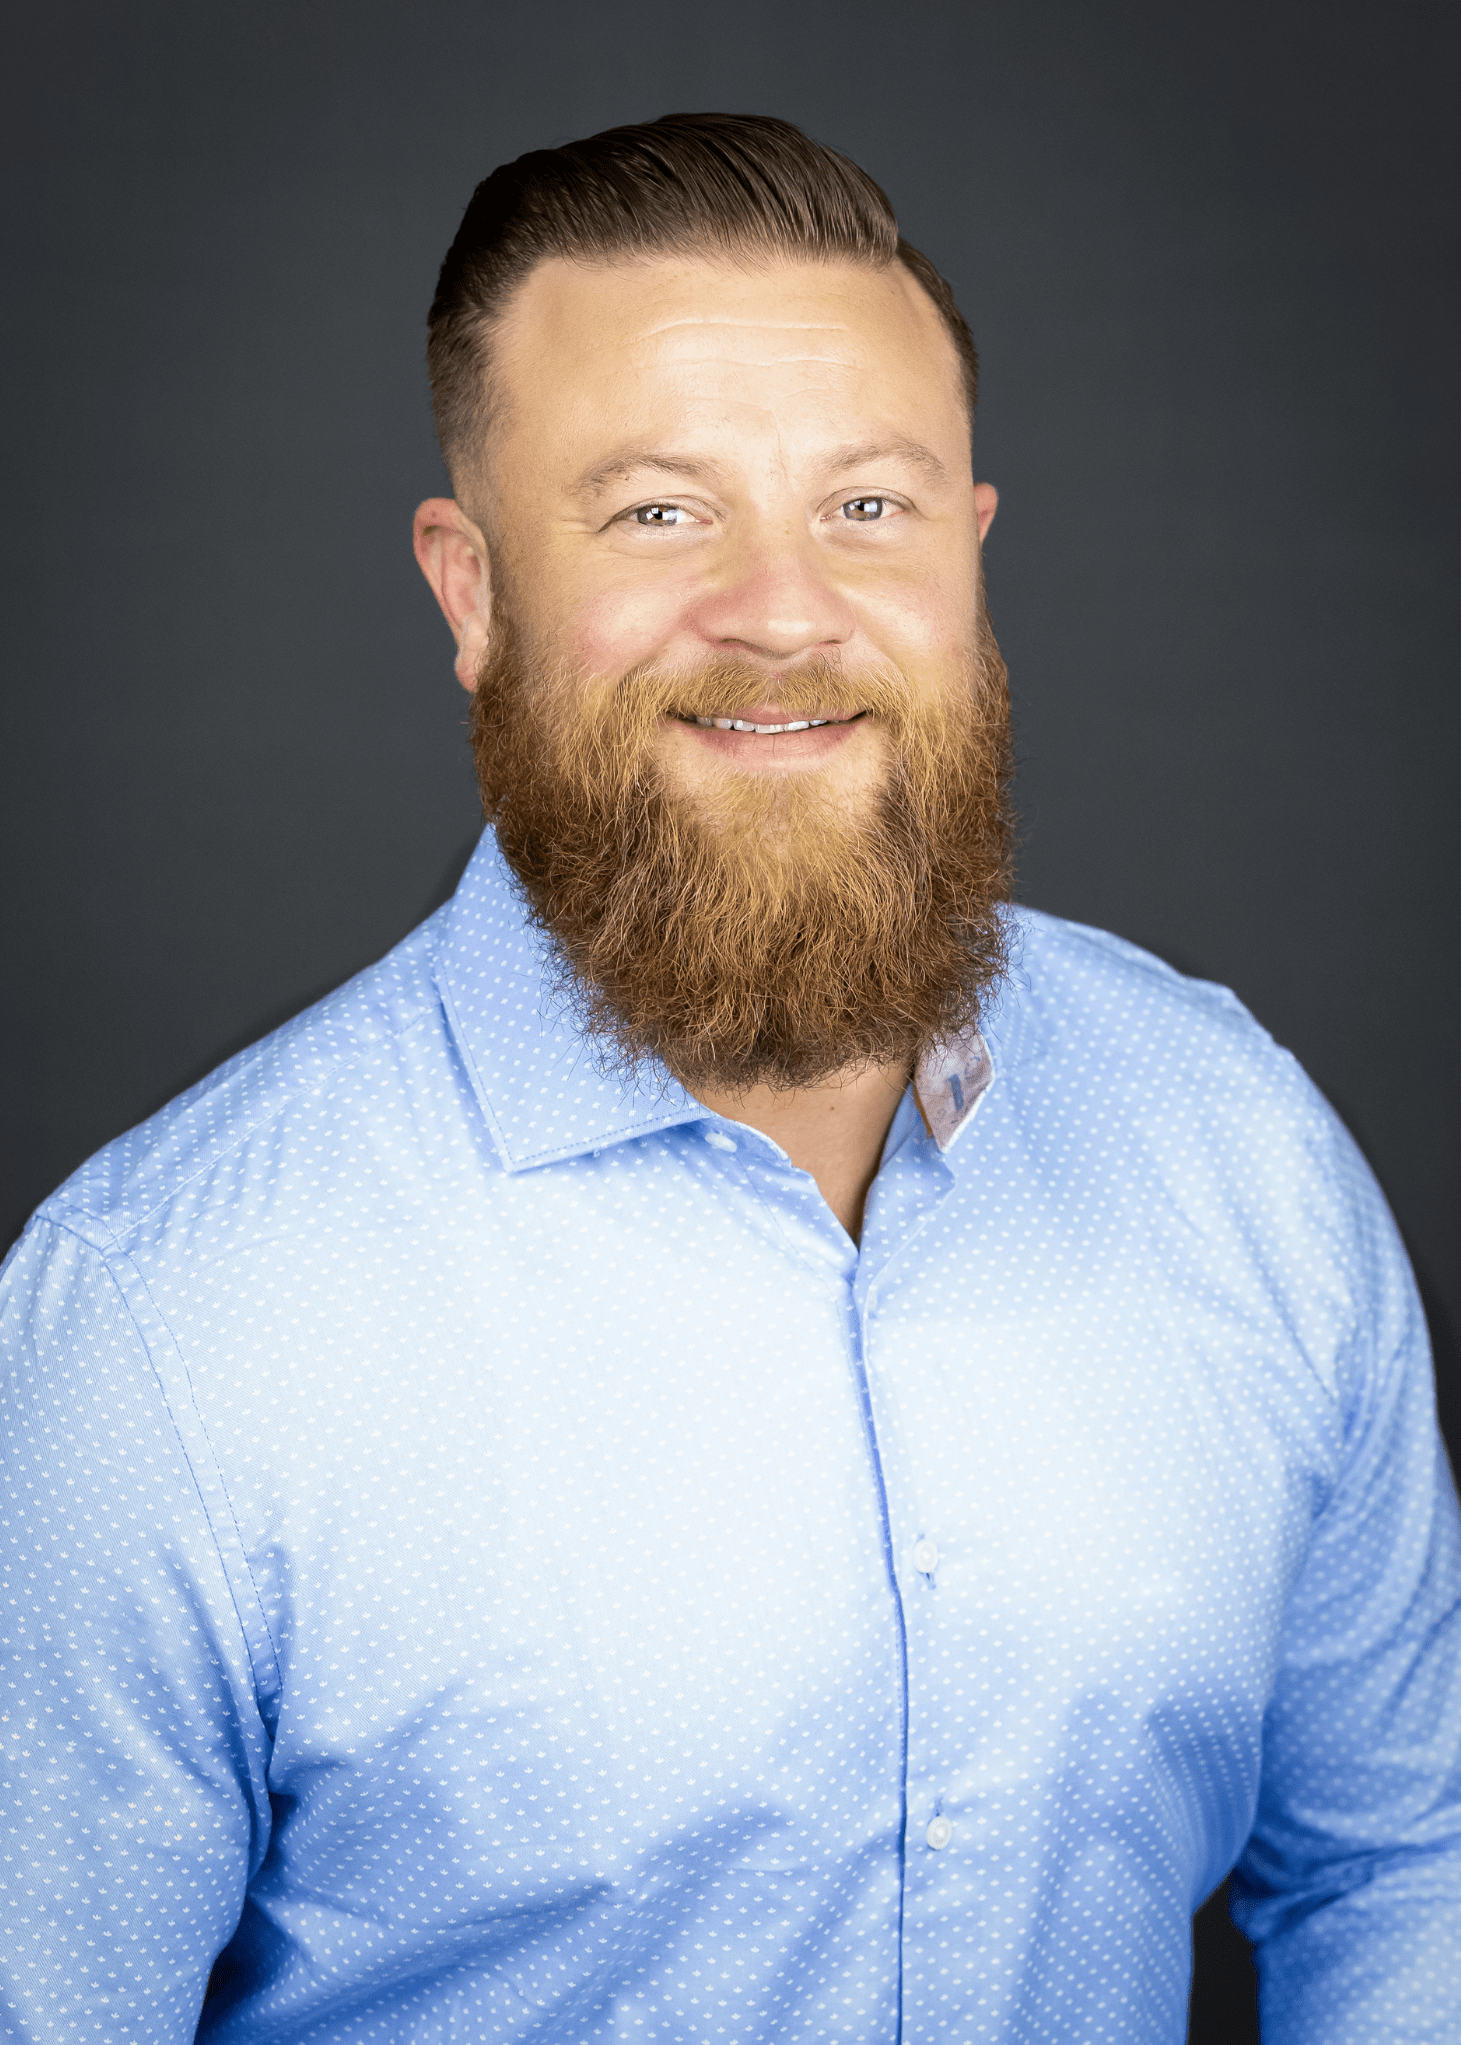 Nick Ricci, Windermere, Real Estate, Whidbey Island, Whidbey, Homes, Buy, sell, invest, listing agent, agent, trusted realtor, selling agent